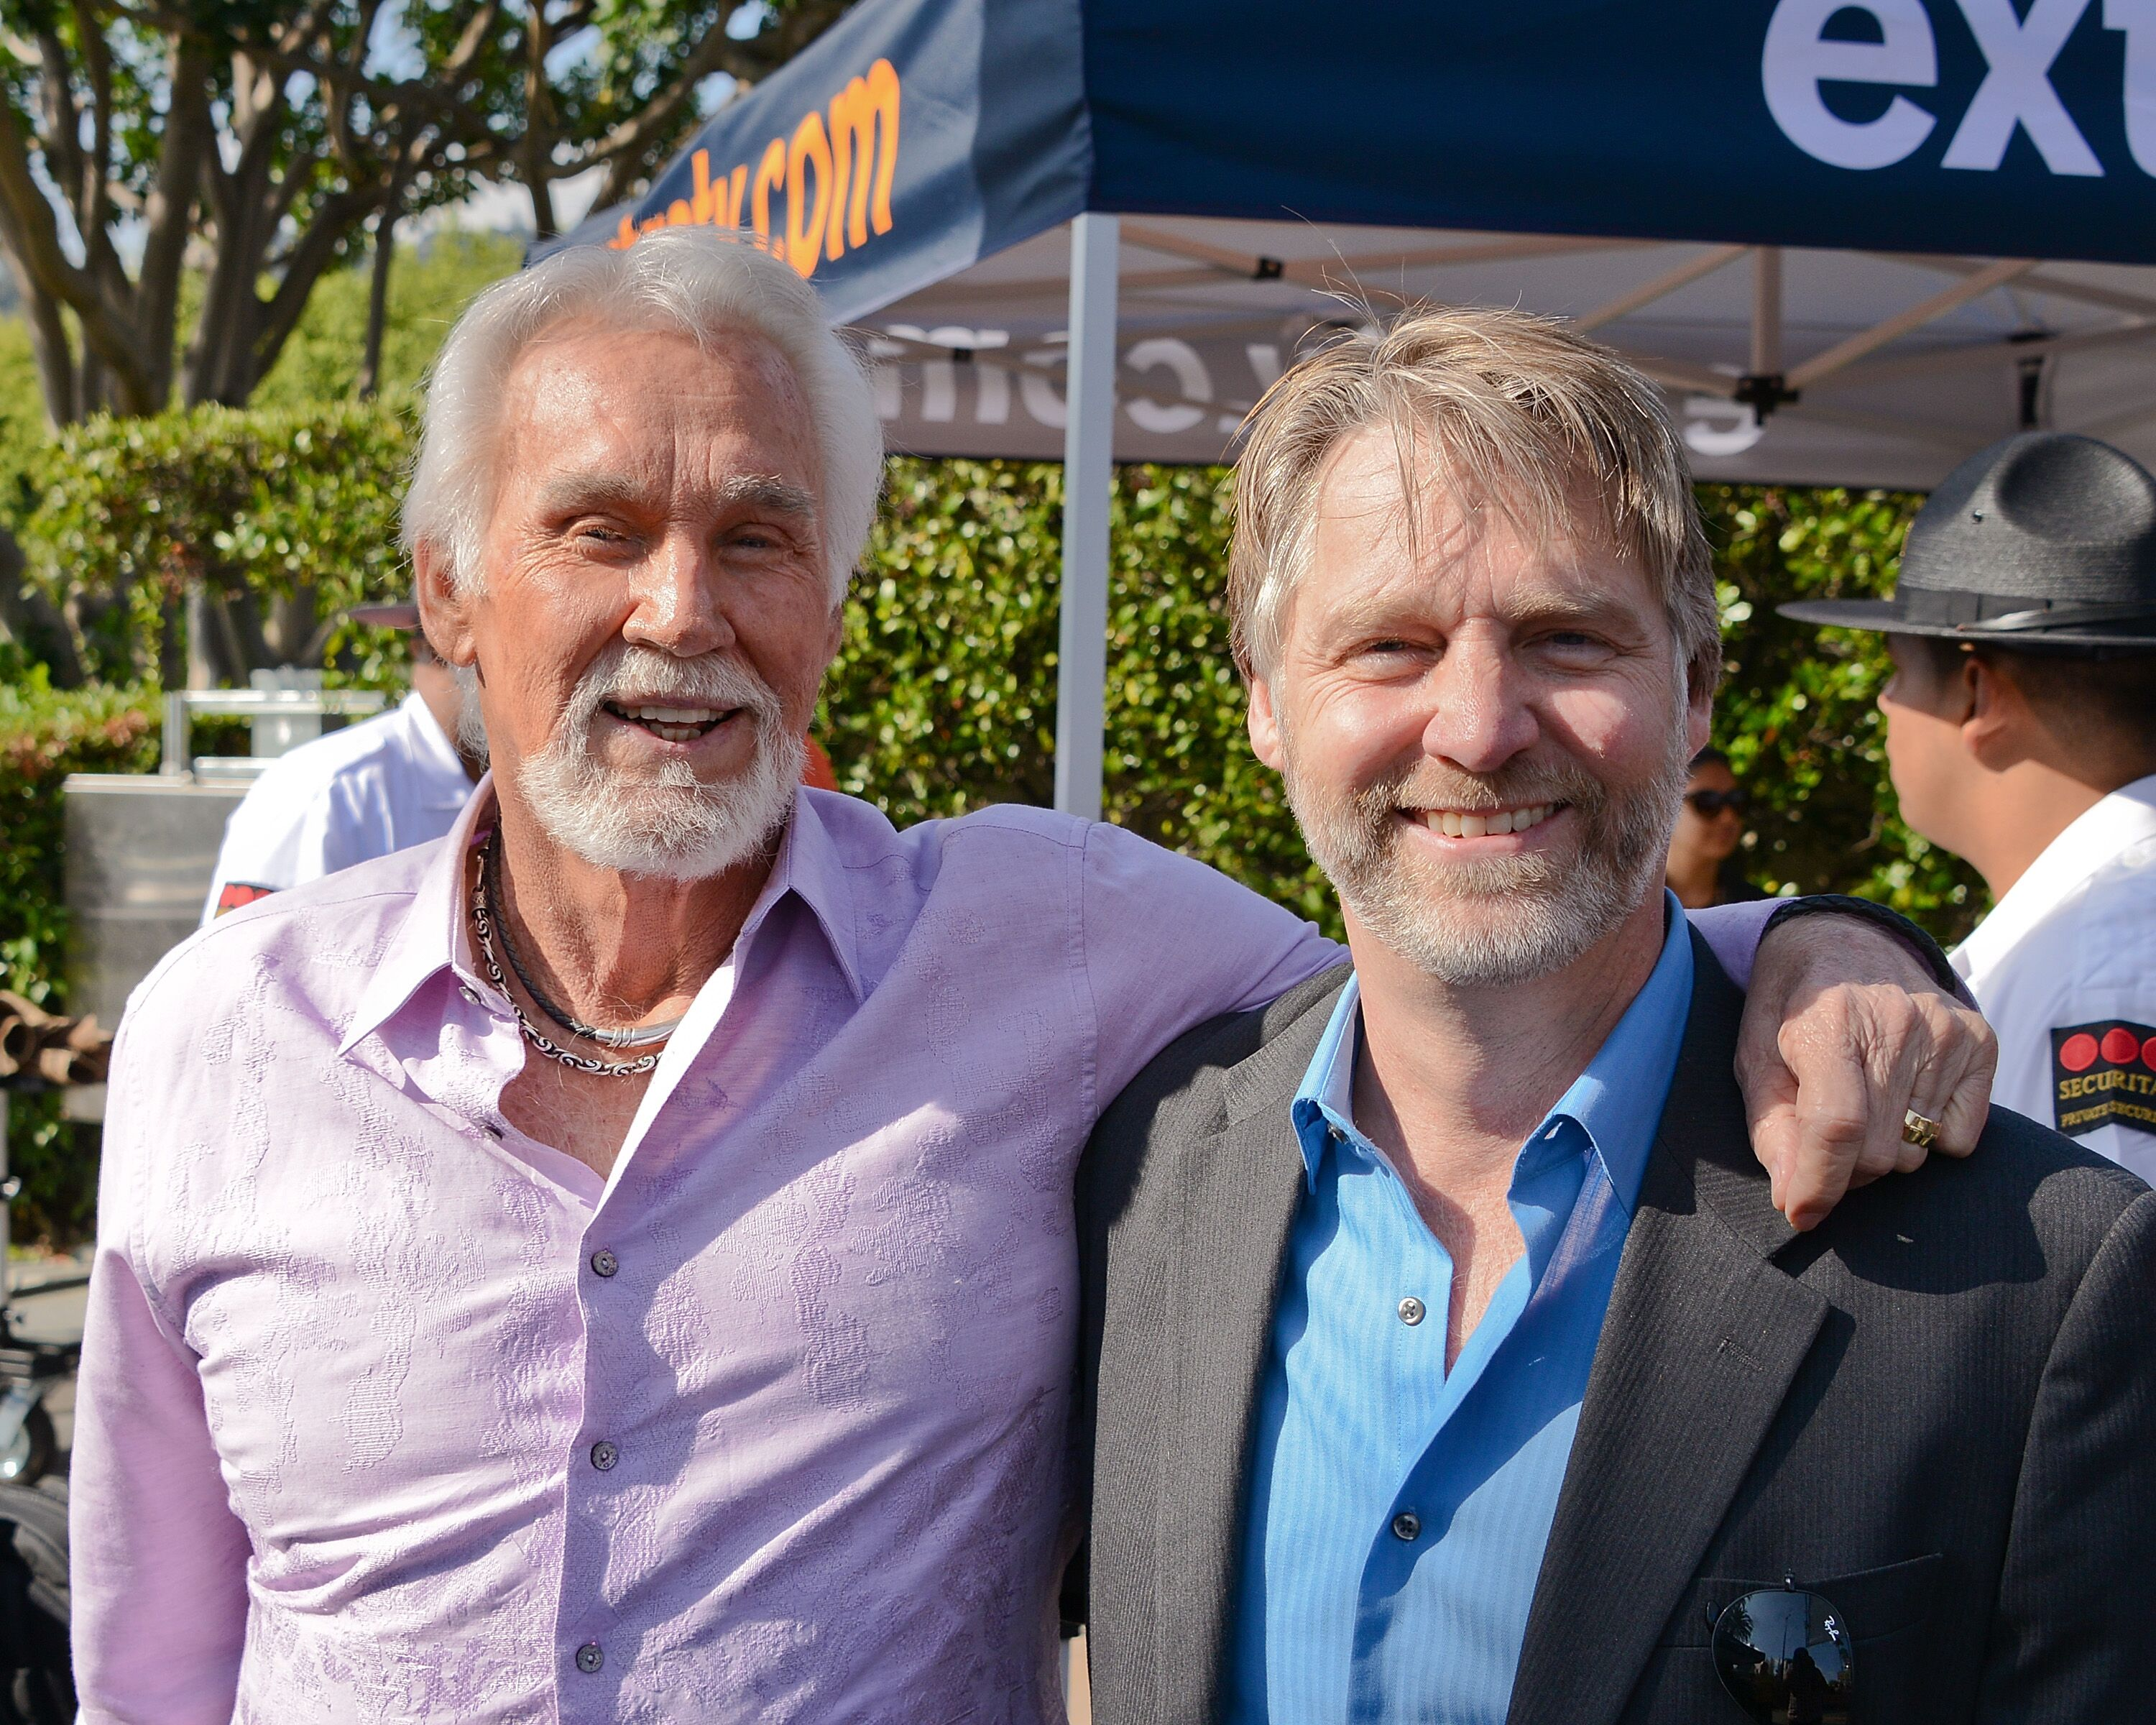 Kenny Rogers and his son actor Kenny Rogers Jr at Universal Studios Hollywood in 2013 | Source: Getty Images